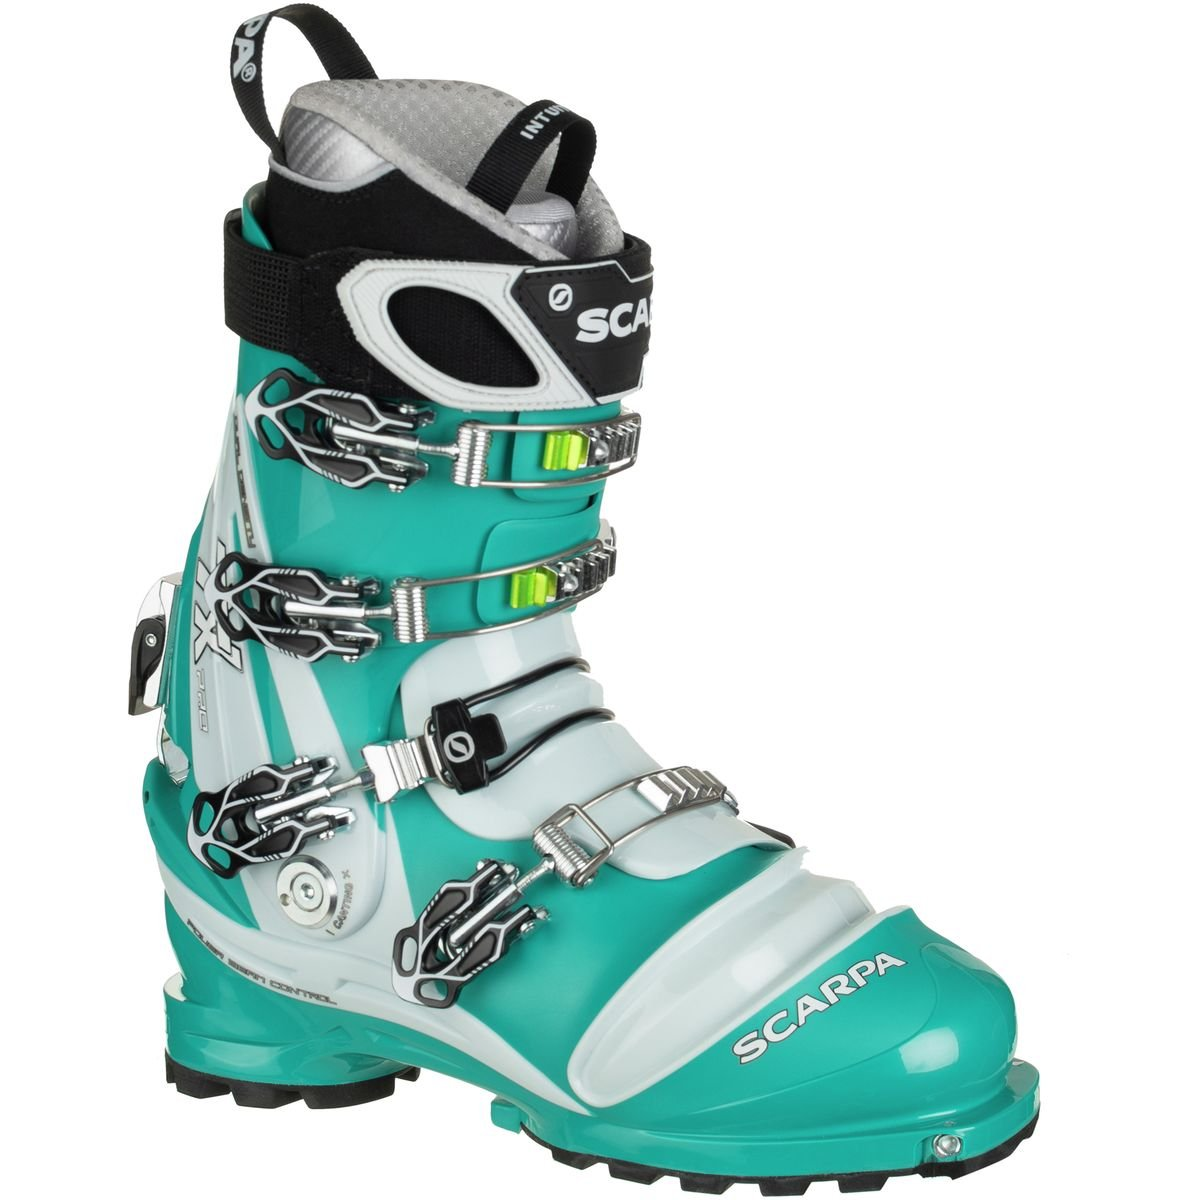 Scarpa TX Pro Telemark Boot - Women's Emerald/Ice Blue, 25.5 by SCARPA